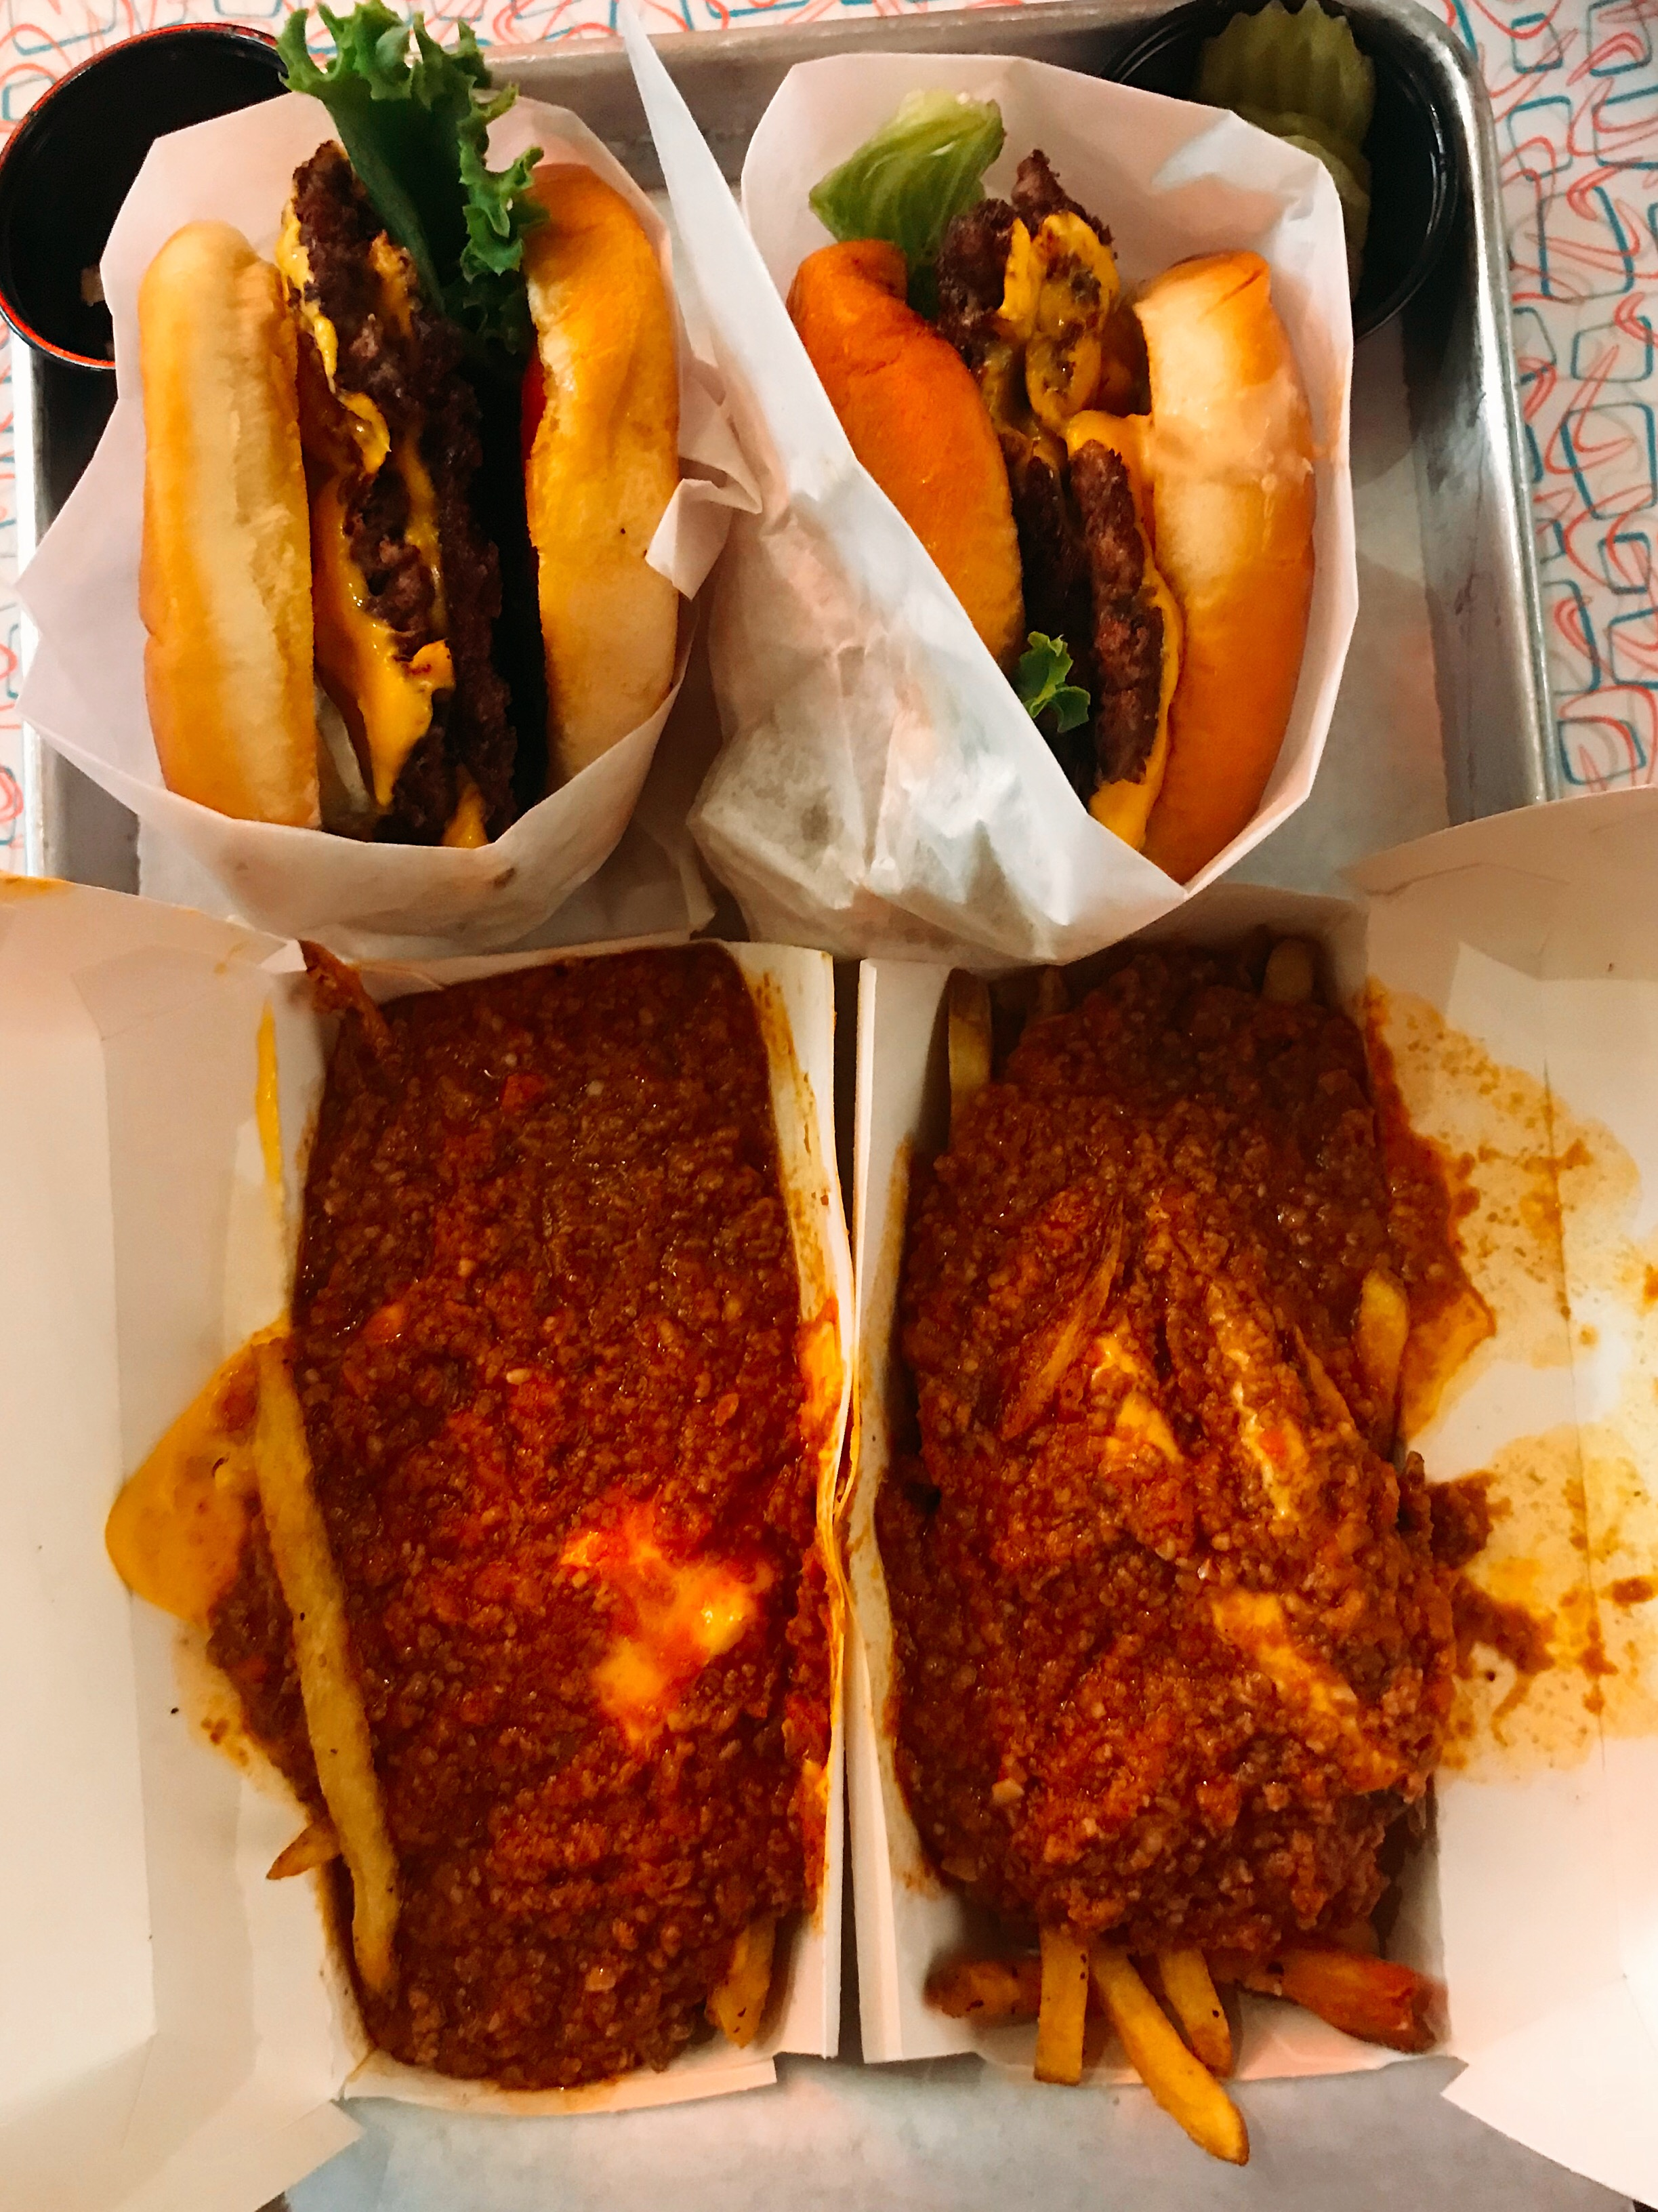 Double Cheeseburgers and Chili Cheese Fries with Extra Cheese... Yes EXTRA!